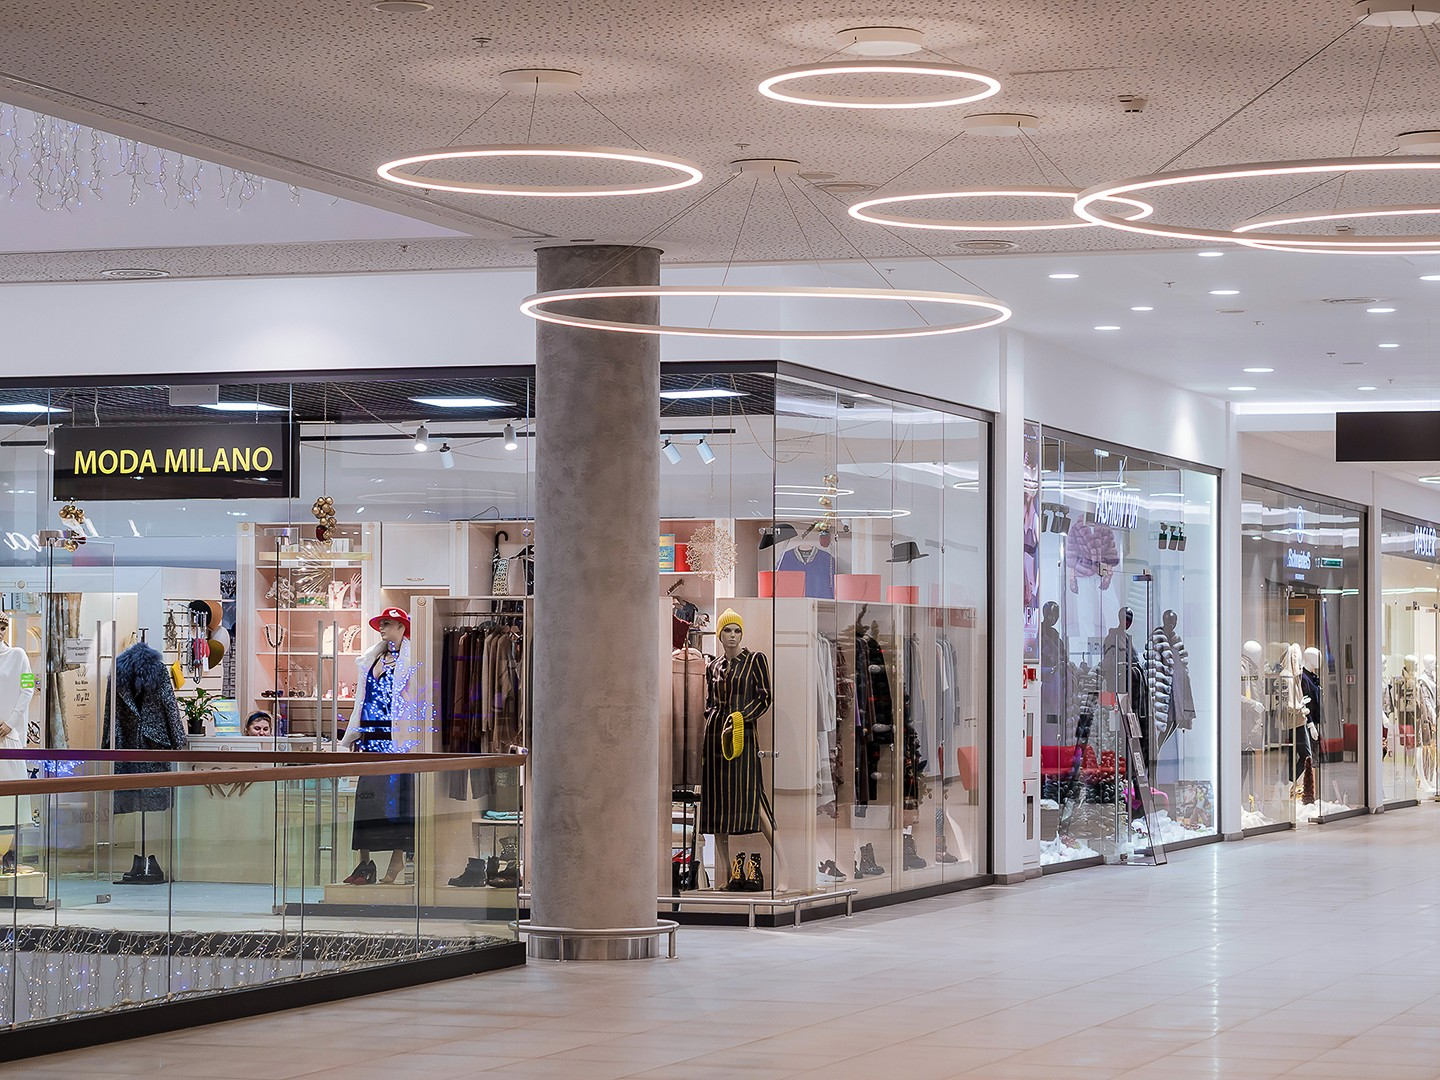 Gallery in the mall. interior photography of real estate in Moscow